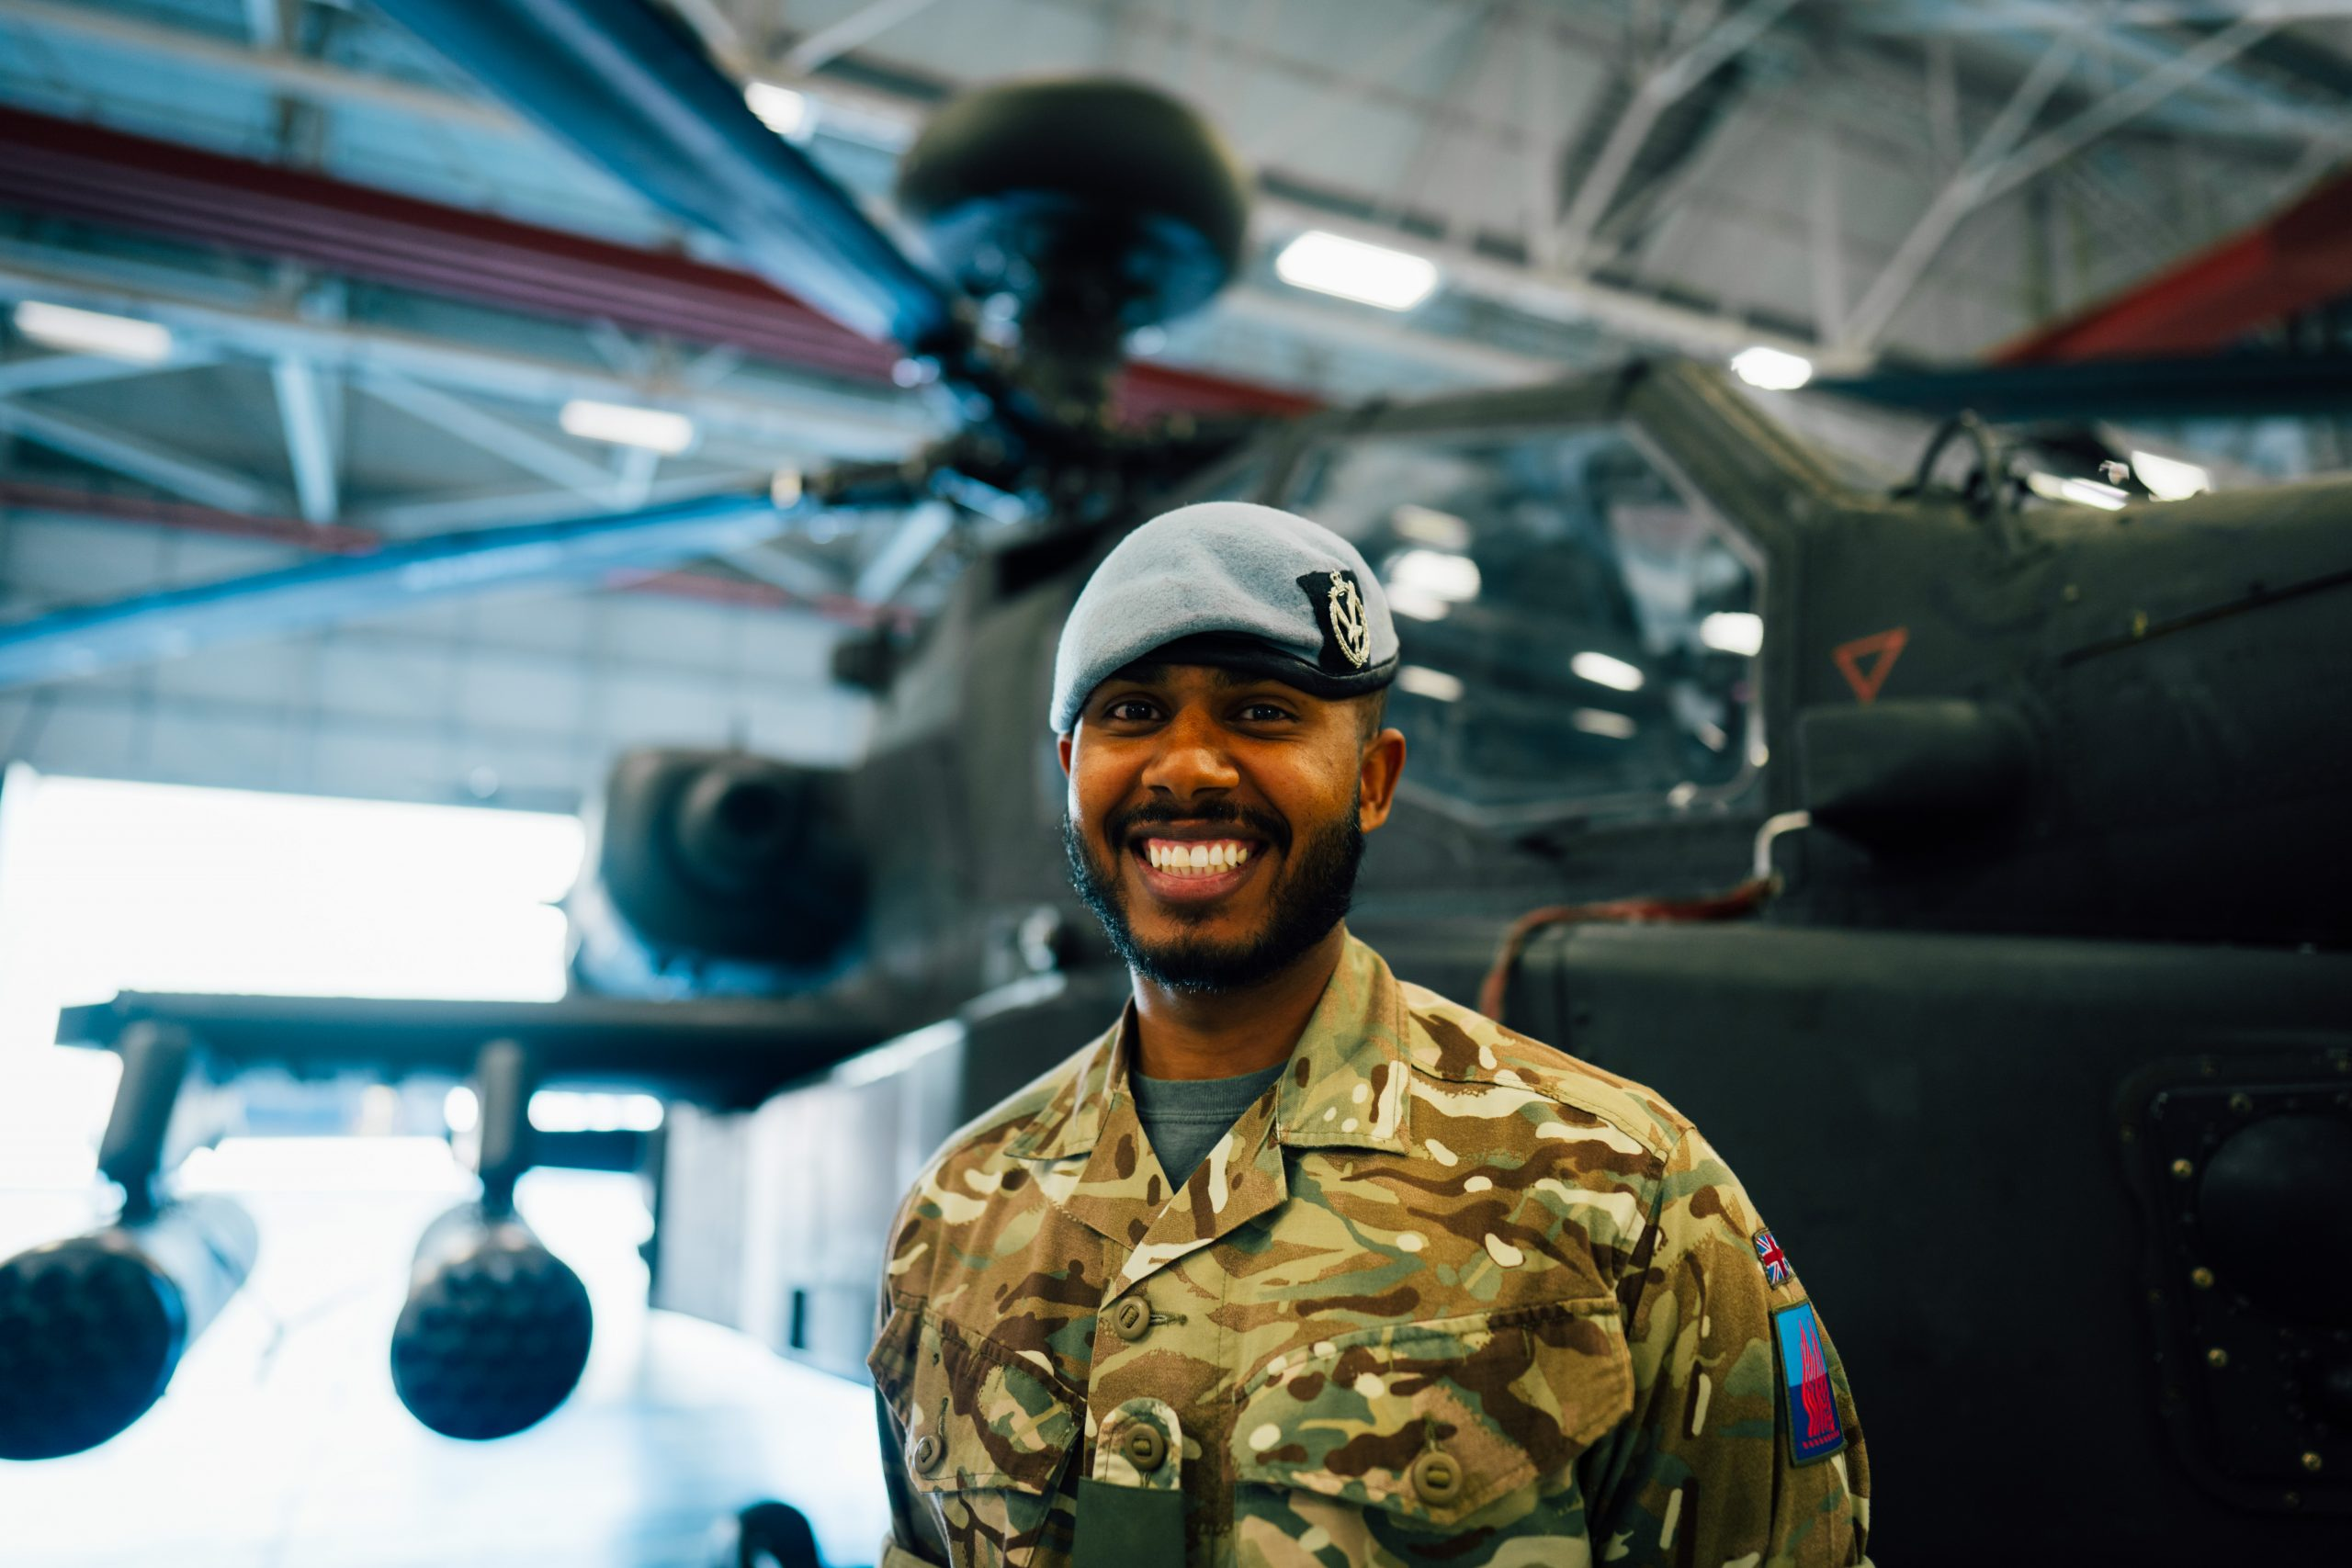 ON THE BALL: Air Trooper Munib Sheikh joined the army in 2015, after he took part a three-day army camp in the Queen Elizabeth barracks in York (Pic credit: Capt I Maclennan 4AAC)